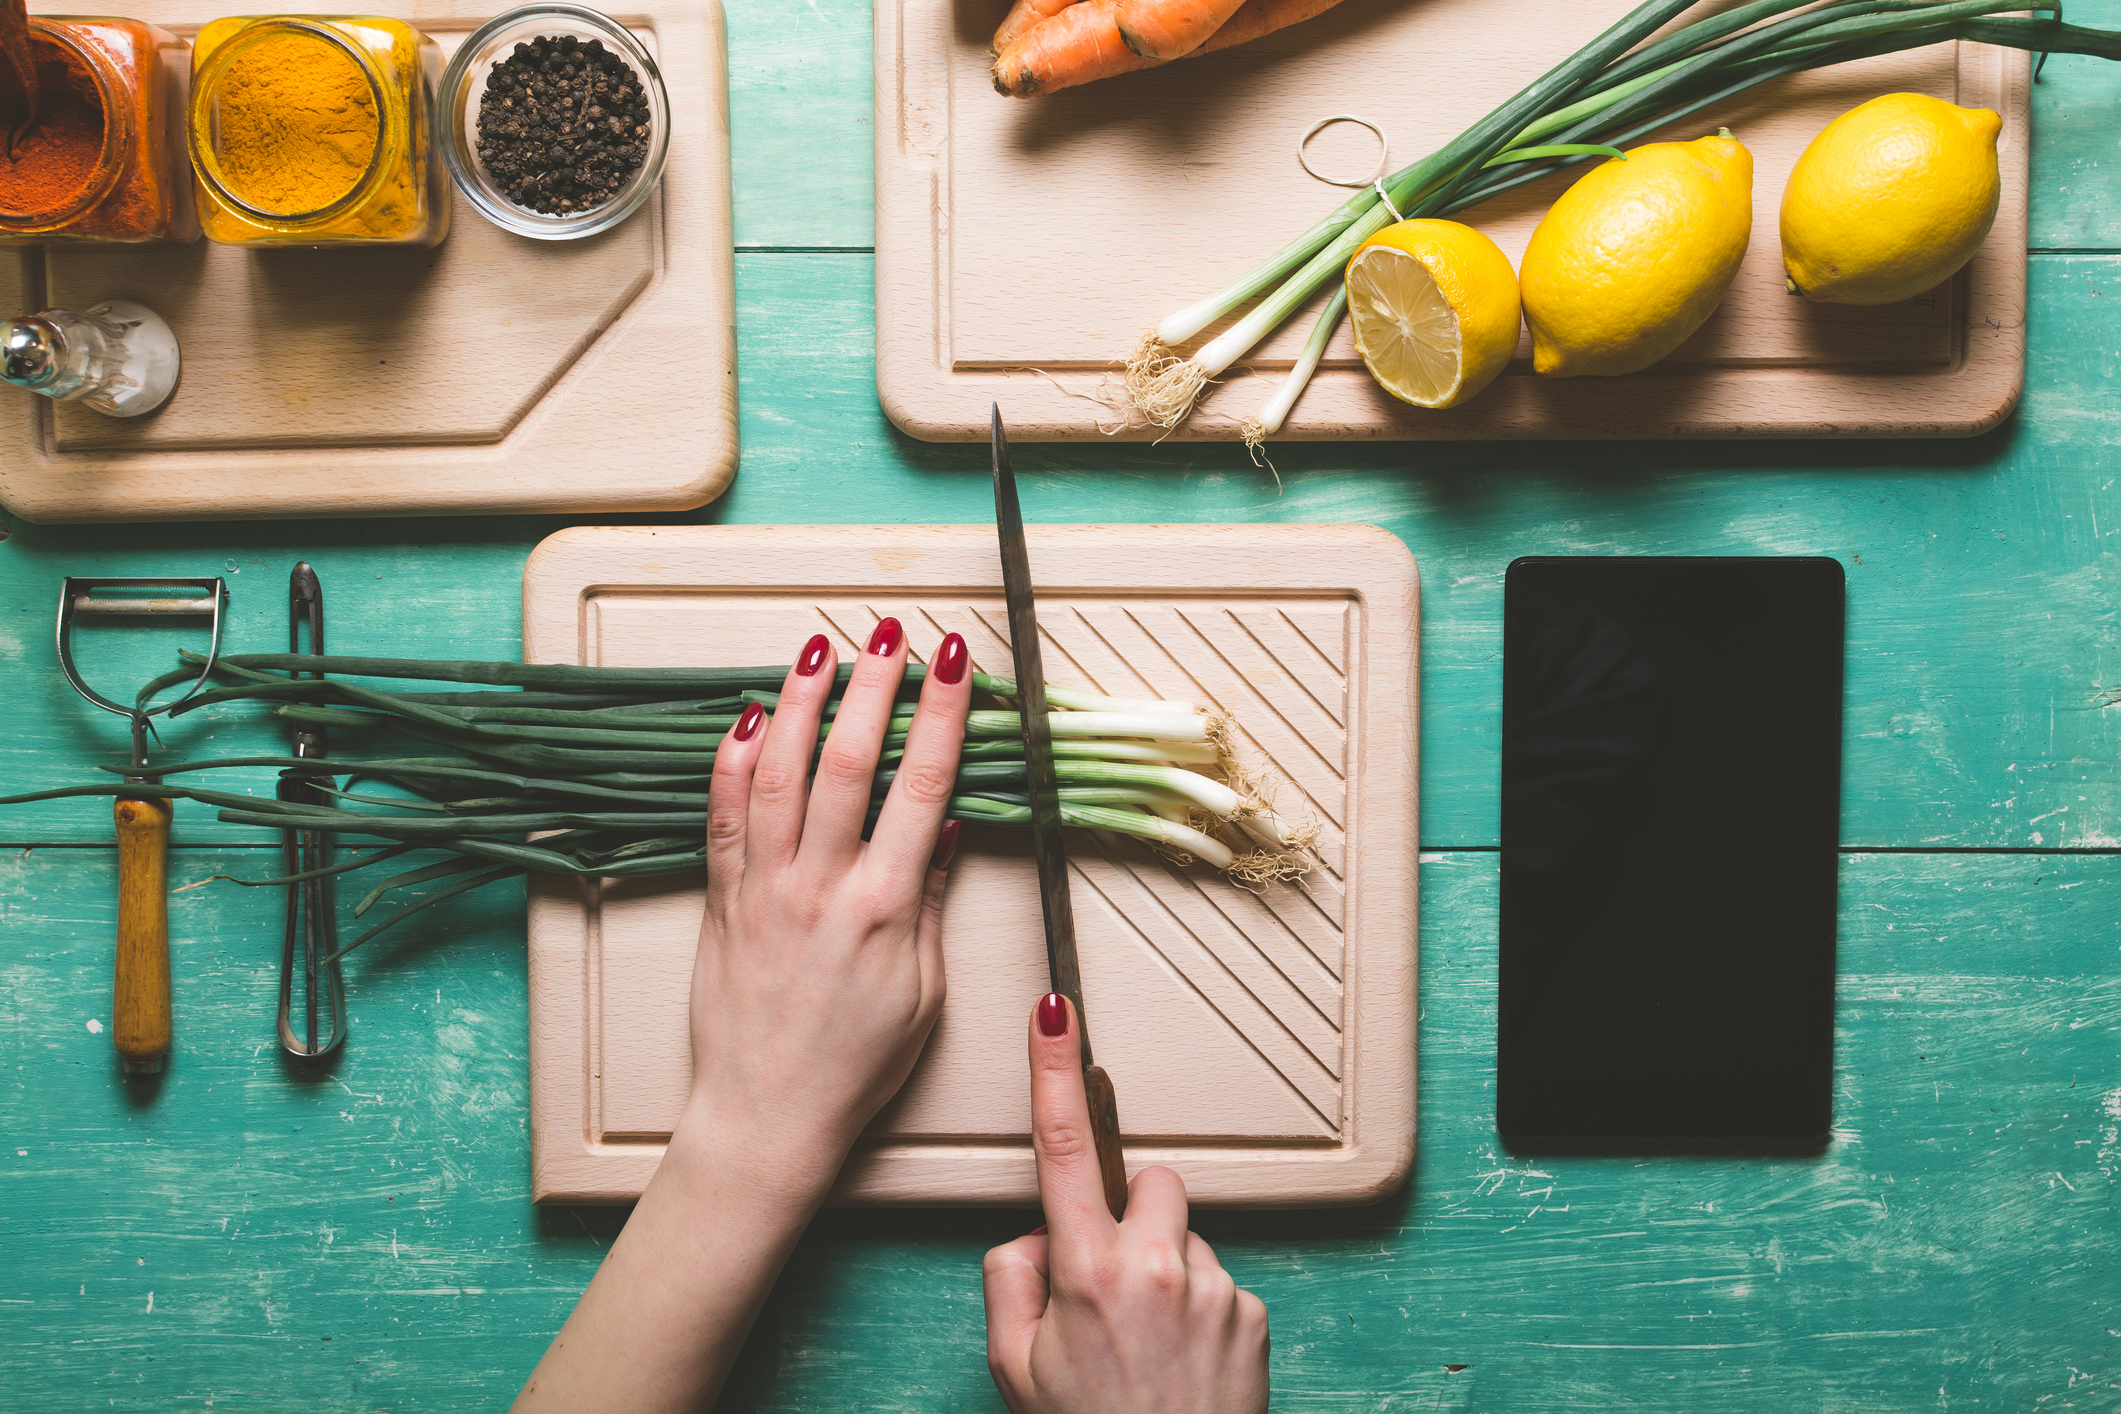 Generic image showing woman's hands cutting fresh spring onion on a blue wooden table (Thinkstock/PA)